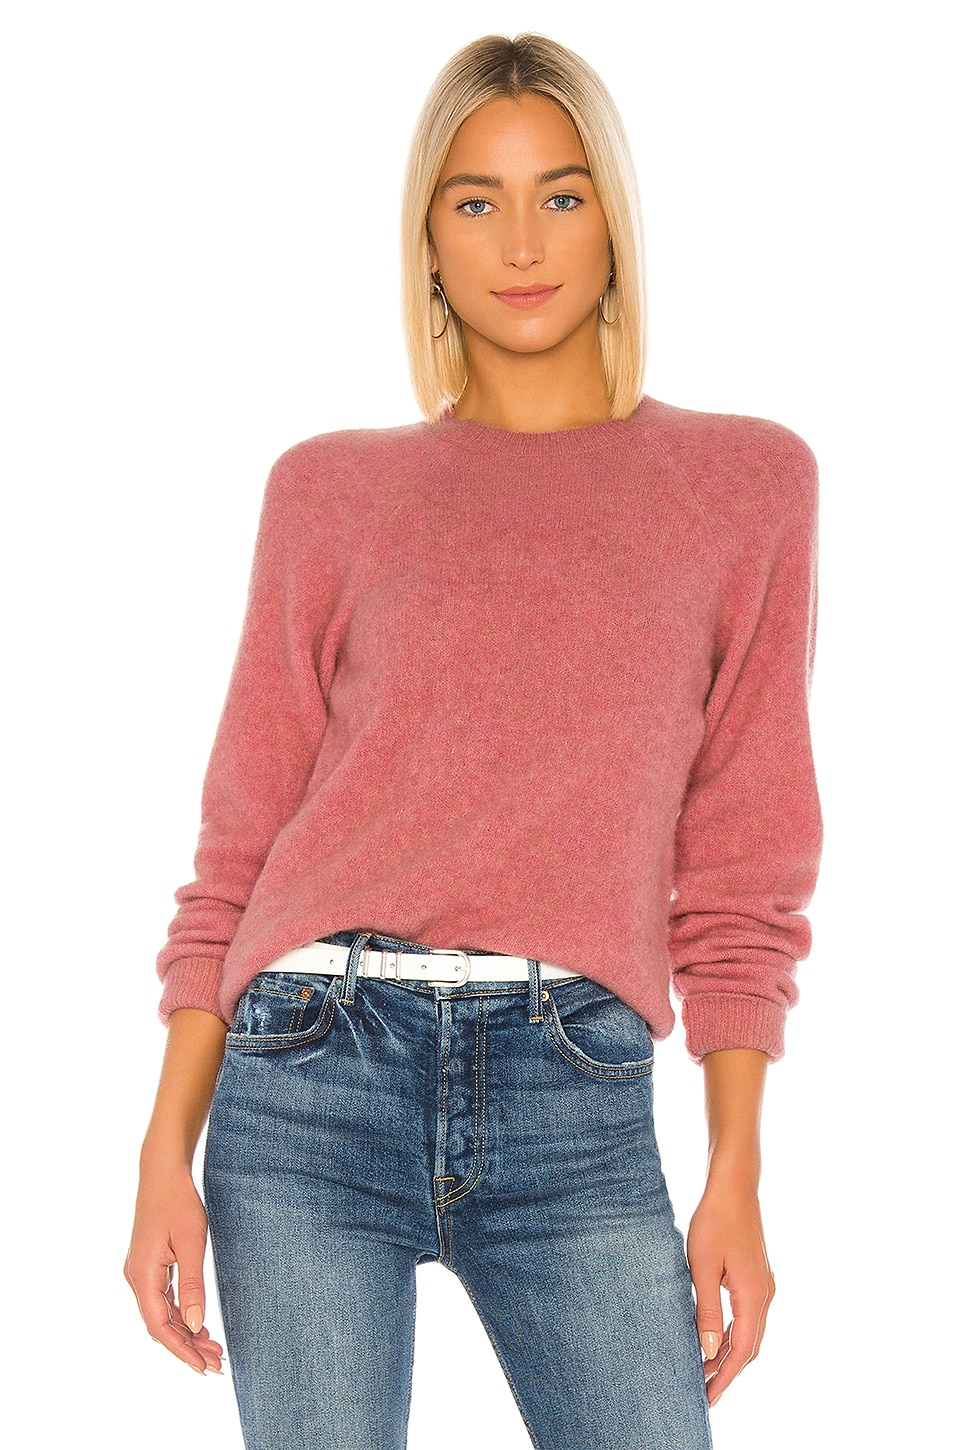 A.P.C. Wendy Pullover in Fae Vieux Rose